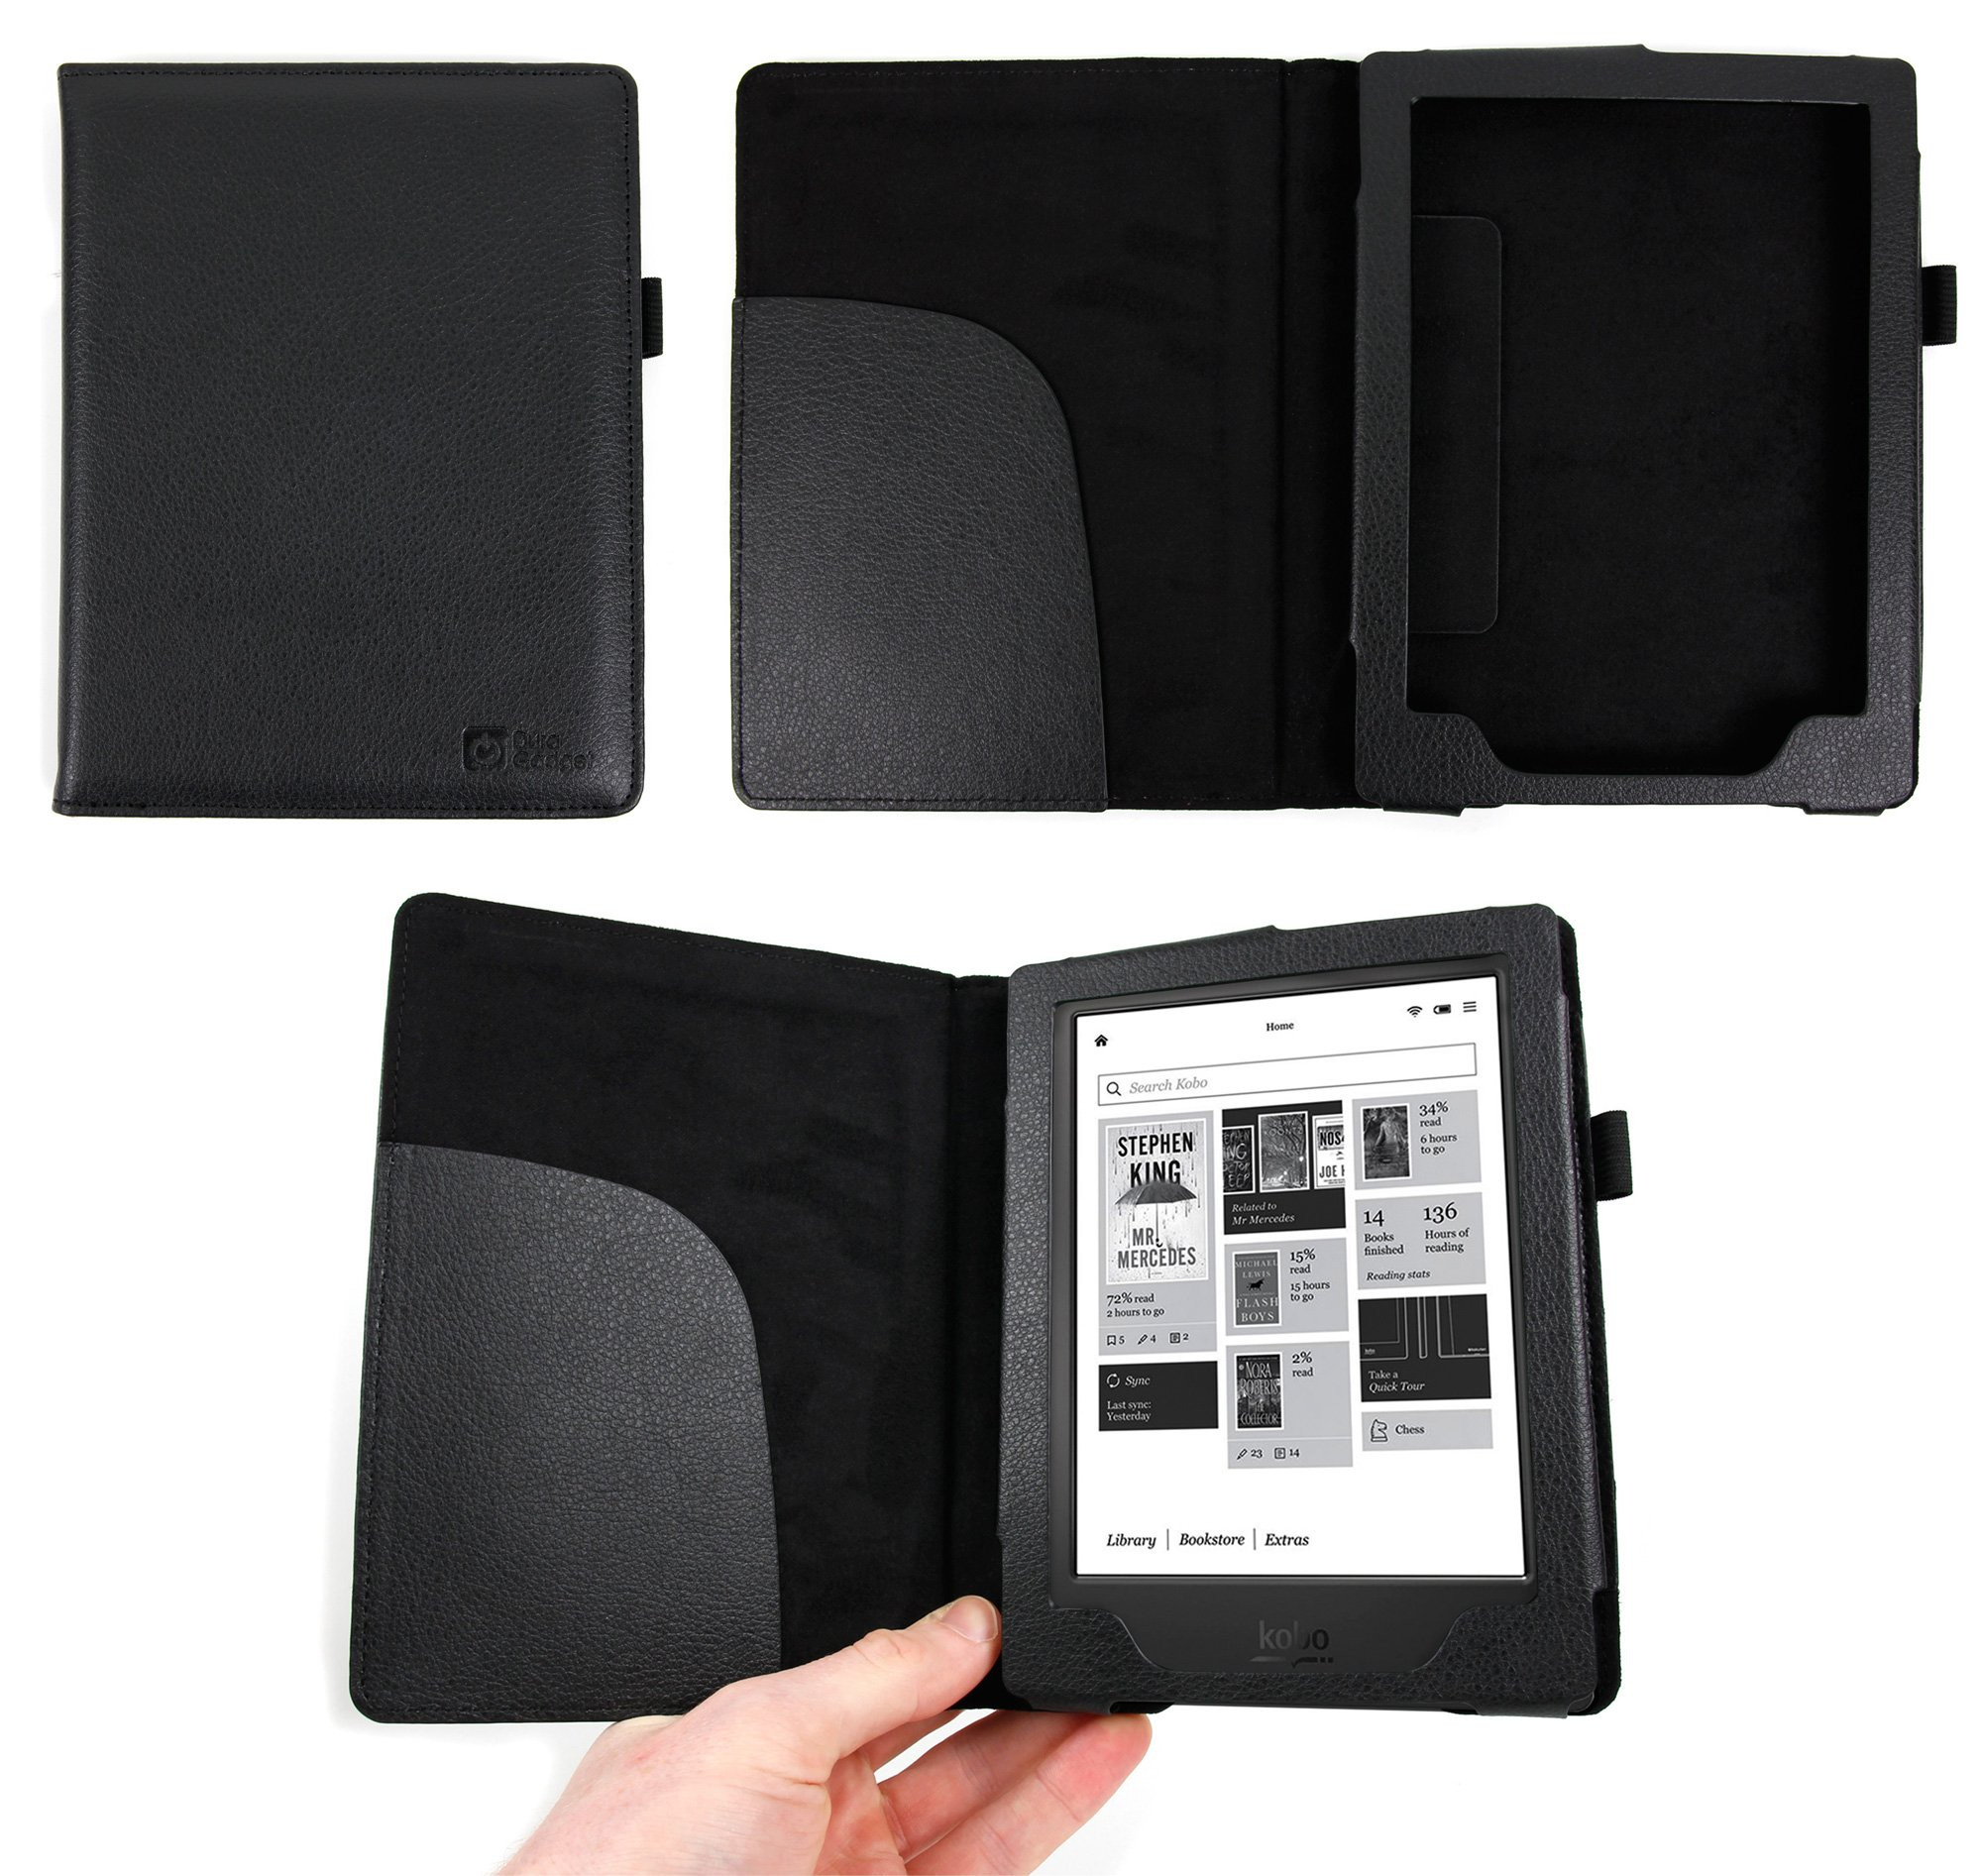 DURAGADGET Kobo Aura H20 eReader Case - Deluxe Book-Style Cover in Black for the Kobo Aura H20 (4GB, WiFi, IP67, 265 DPI, 1 GHz, ComfortLight, Carta E Ink HD)